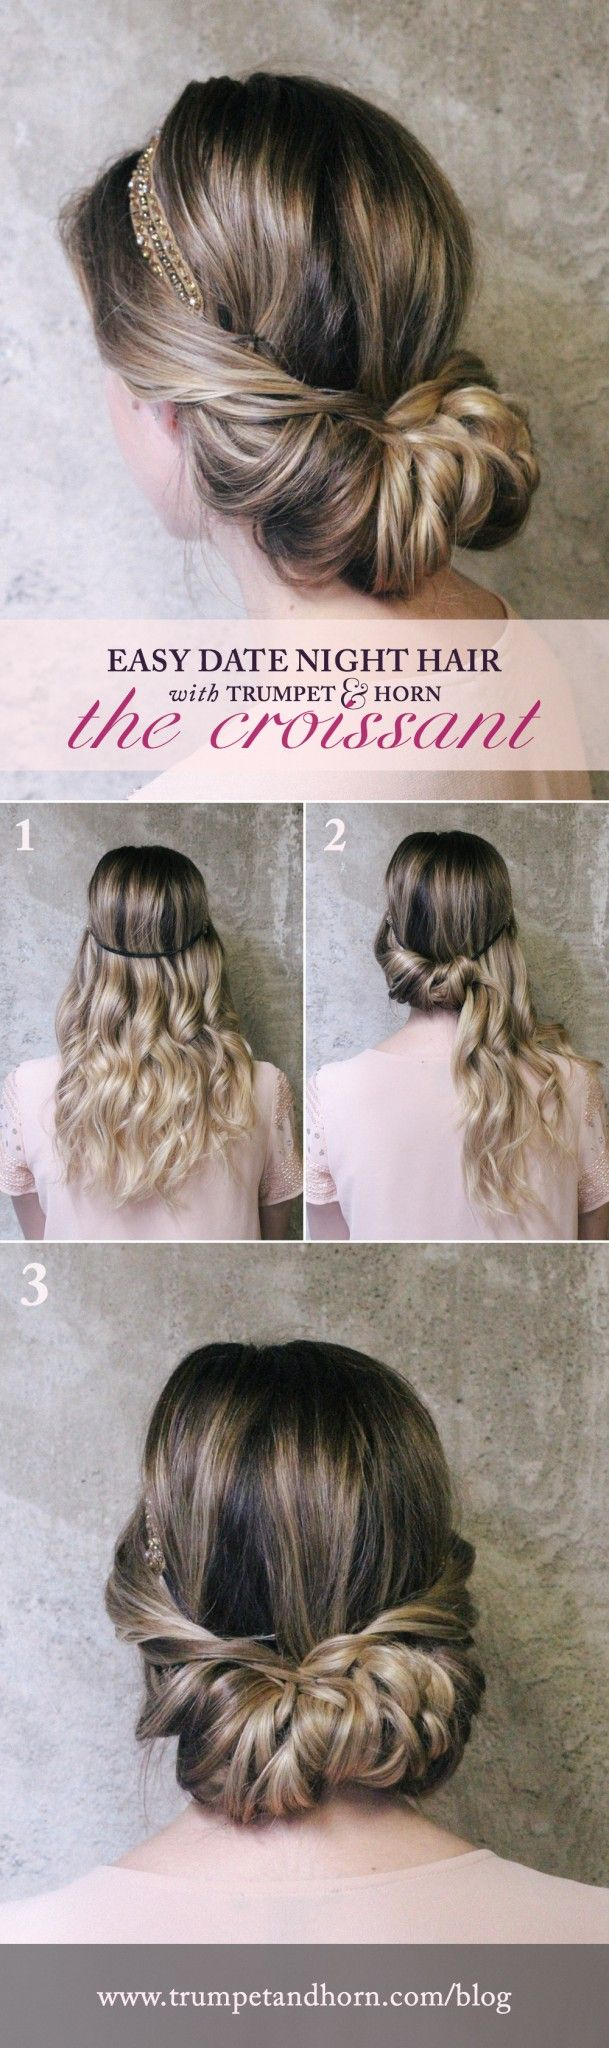 Easy date night hairstyles <3